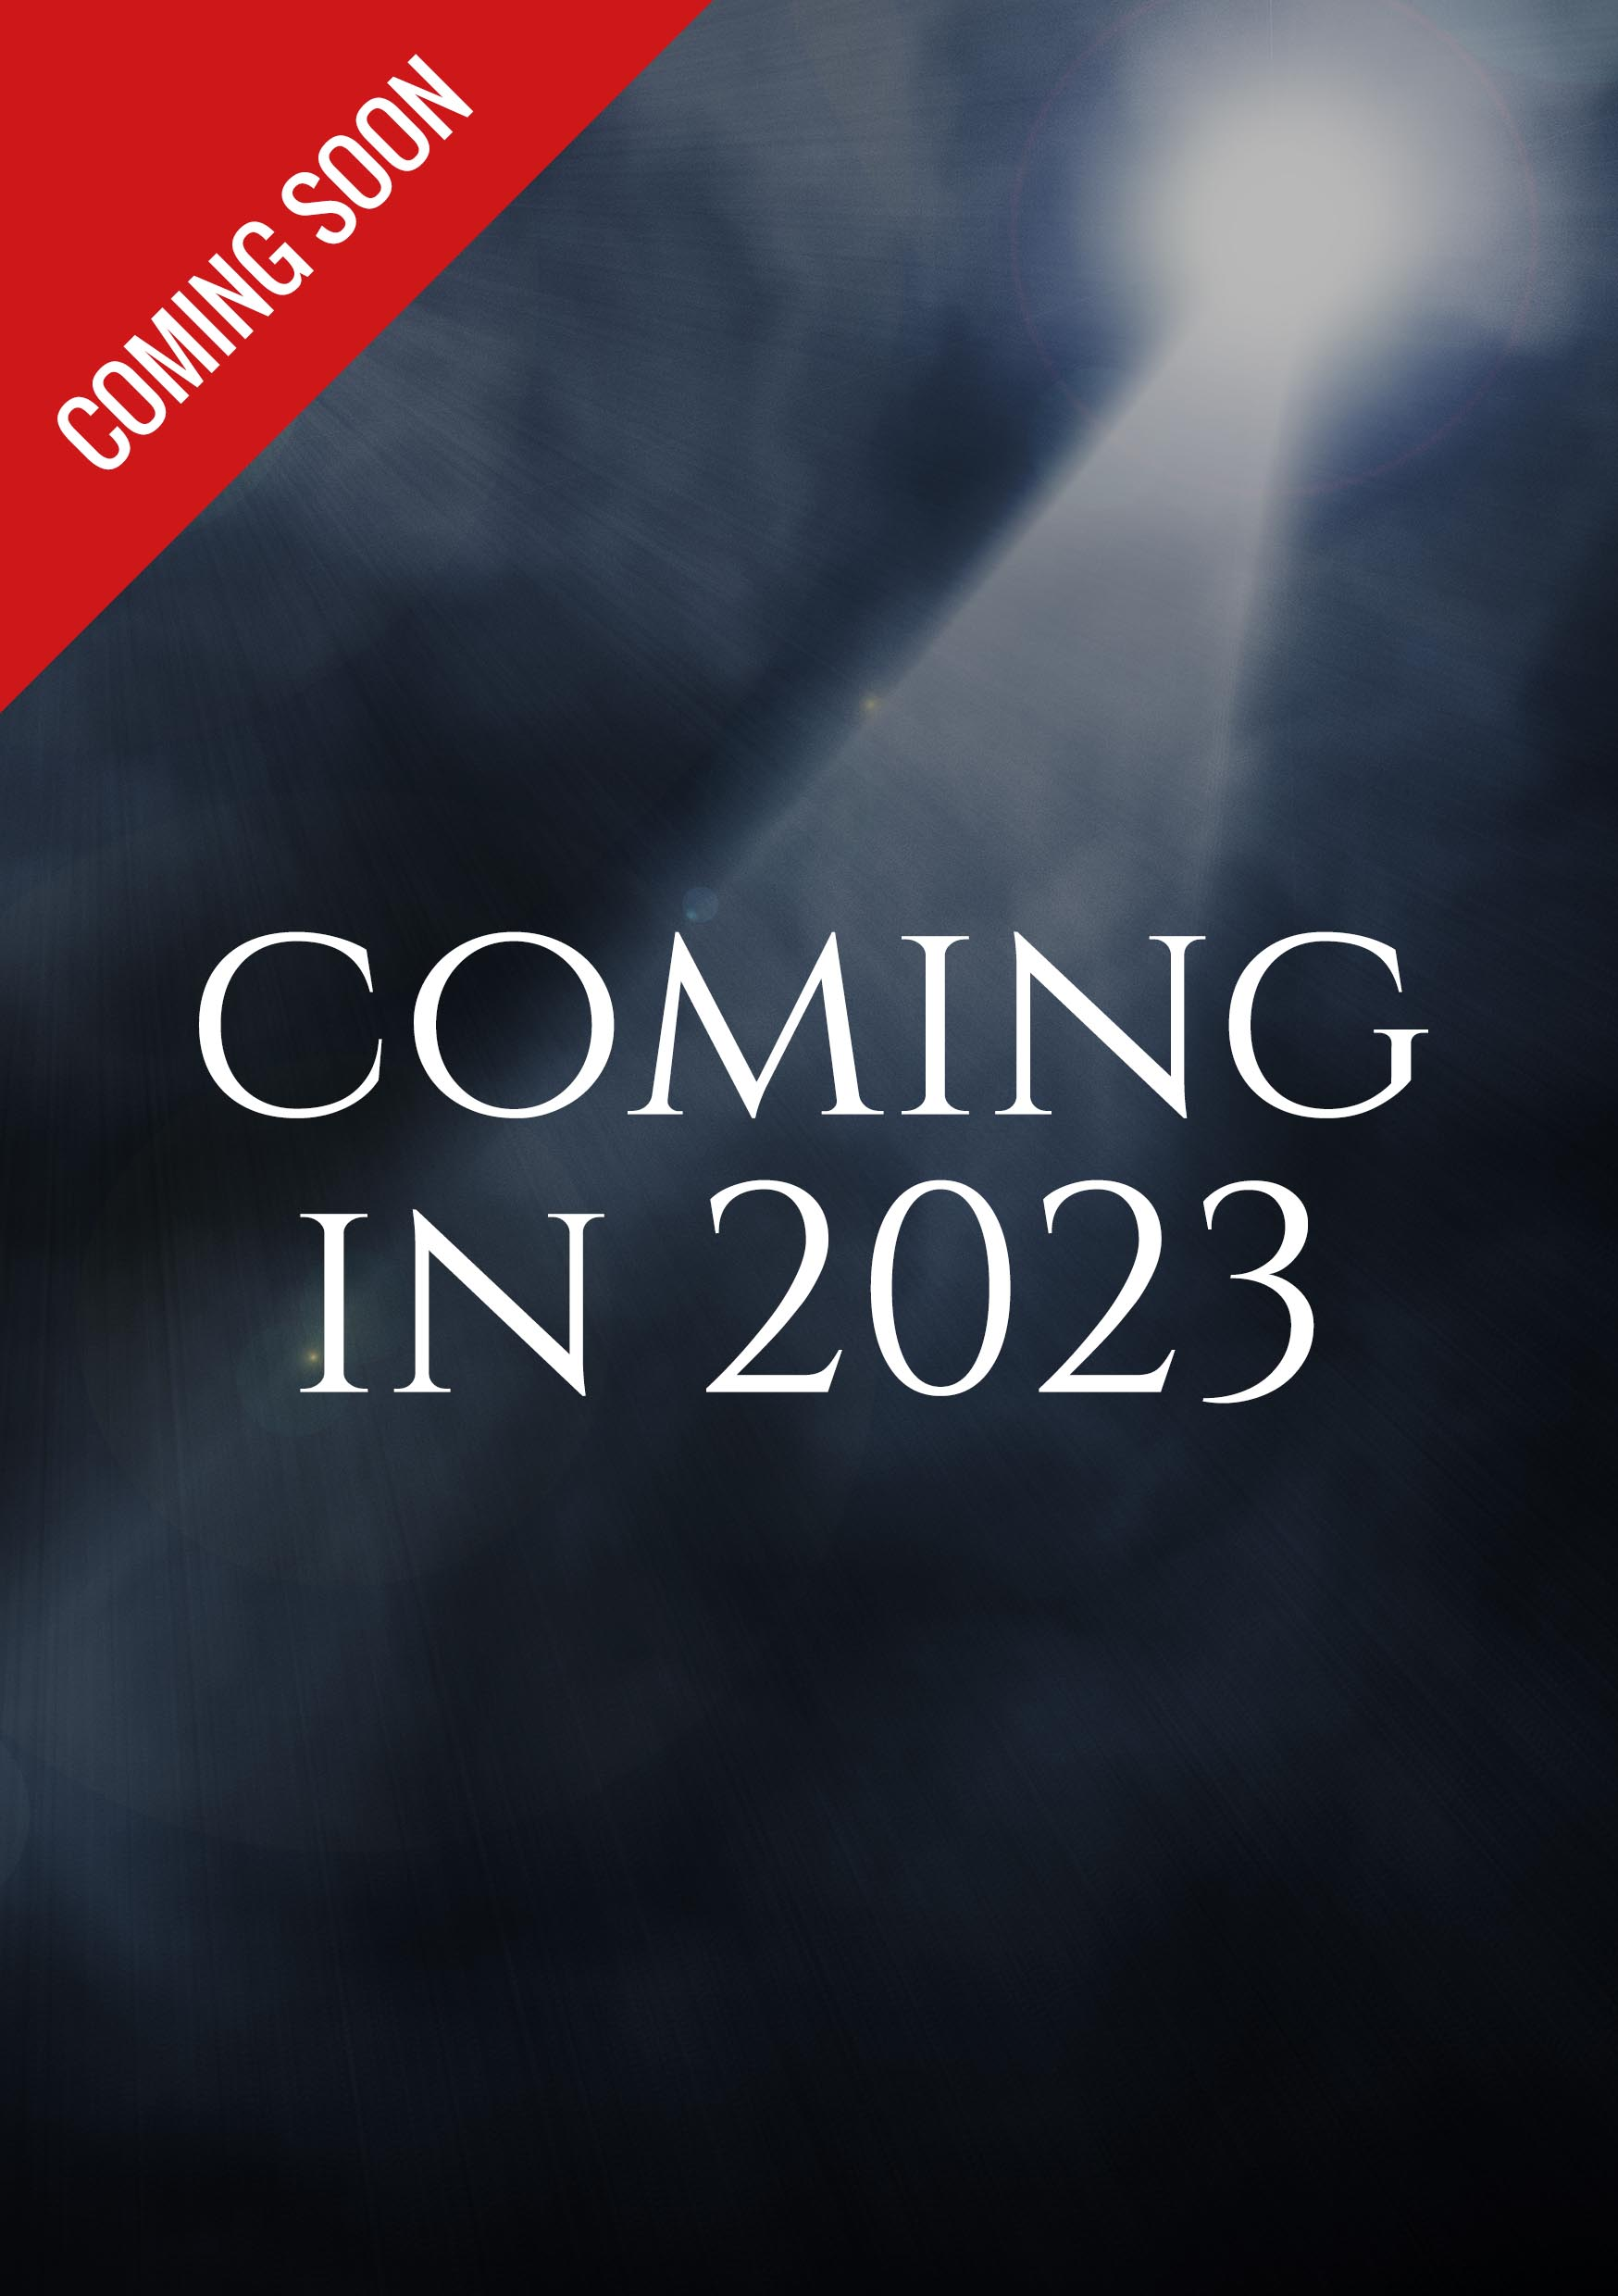 coming 2023